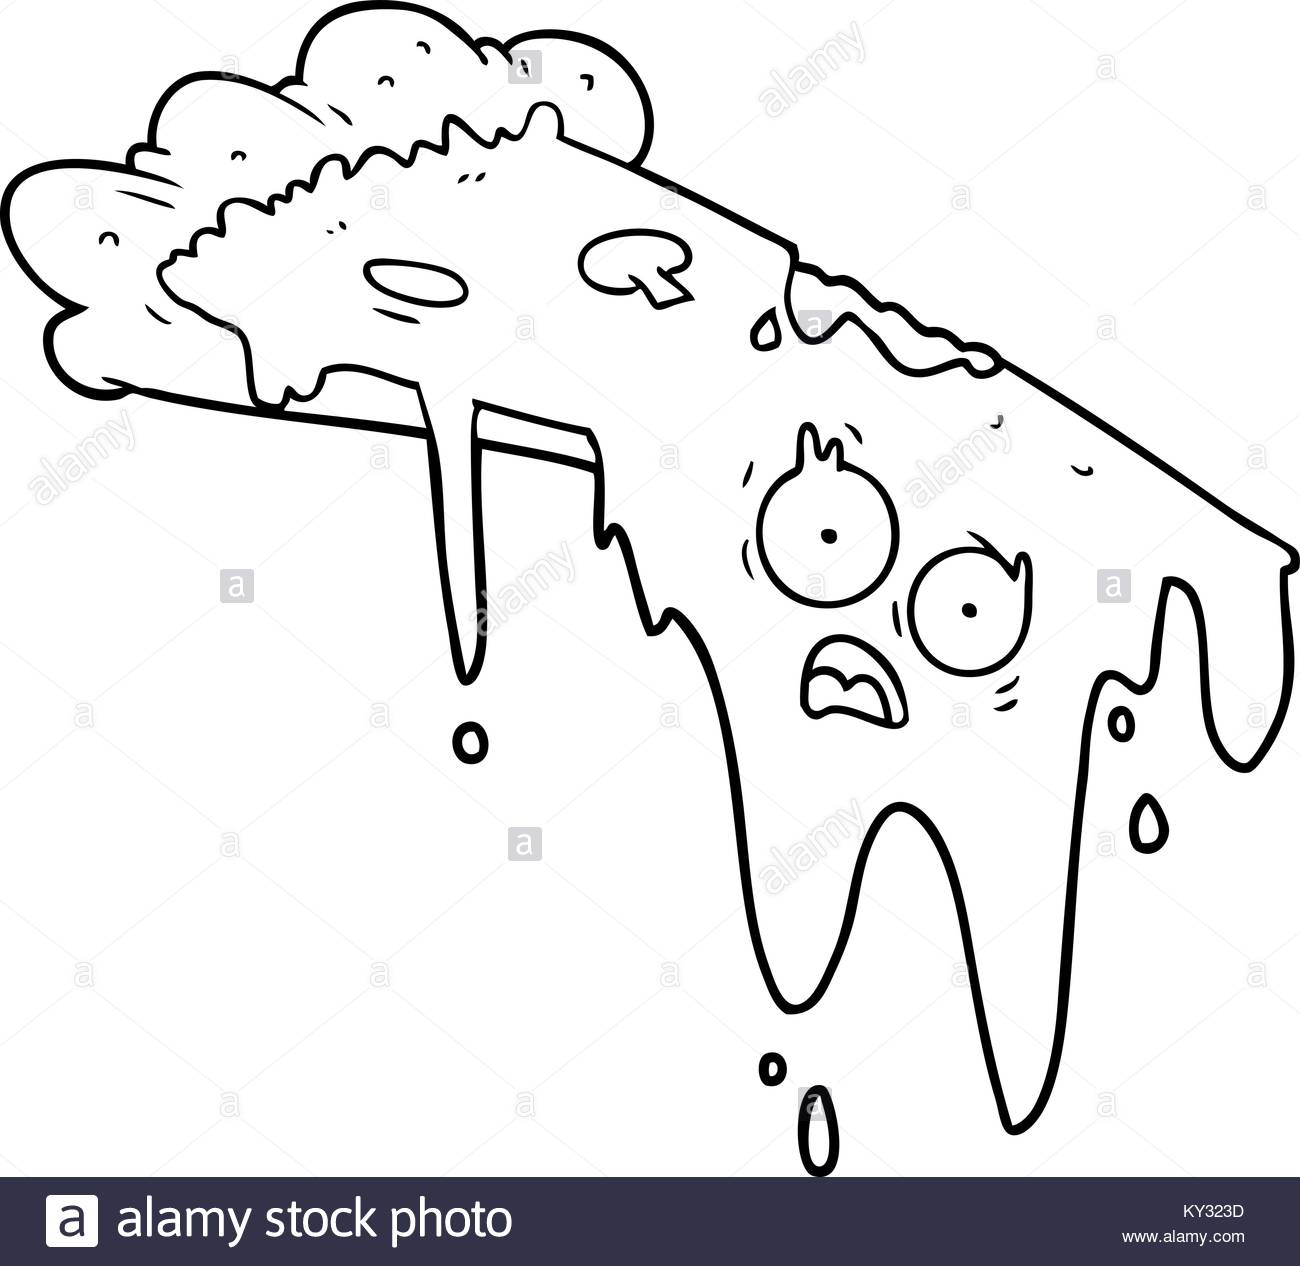 1300x1266 Hand Drawn Illustration Drawing Melting Stock Photos Amp Hand Drawn